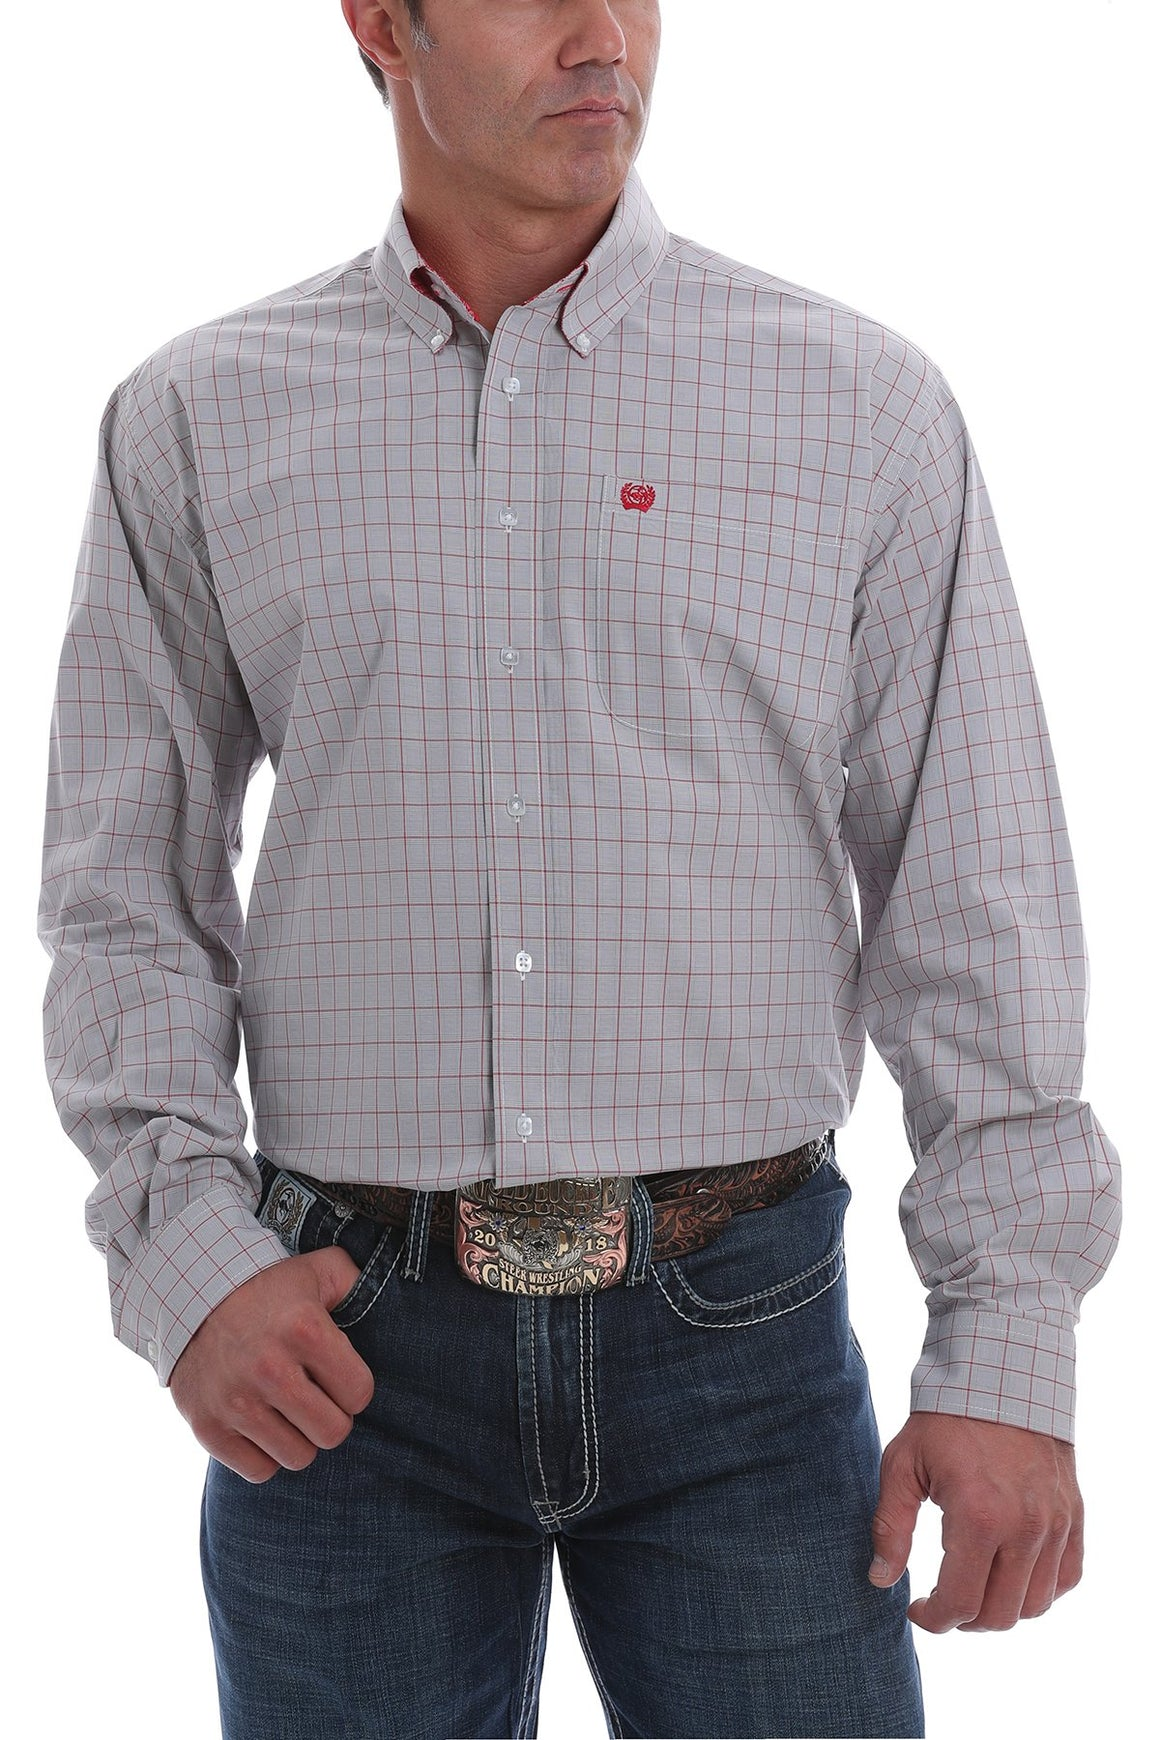 Cinch Mens Plaid Western Button-Down Shirt Gray